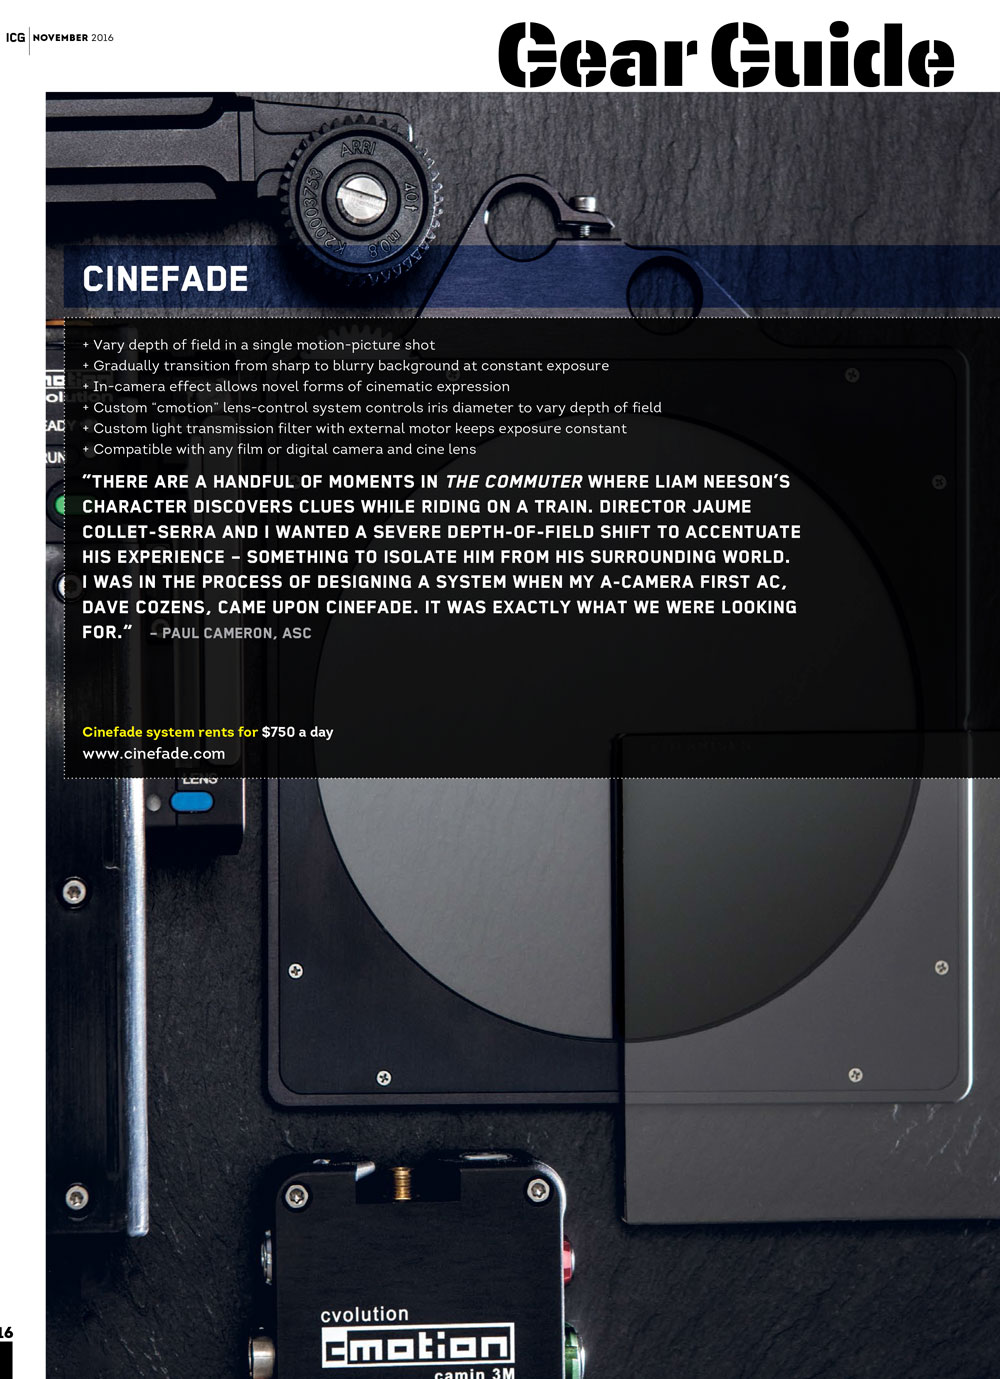 Cinefade---Press---ICG-article---full---web.jpg